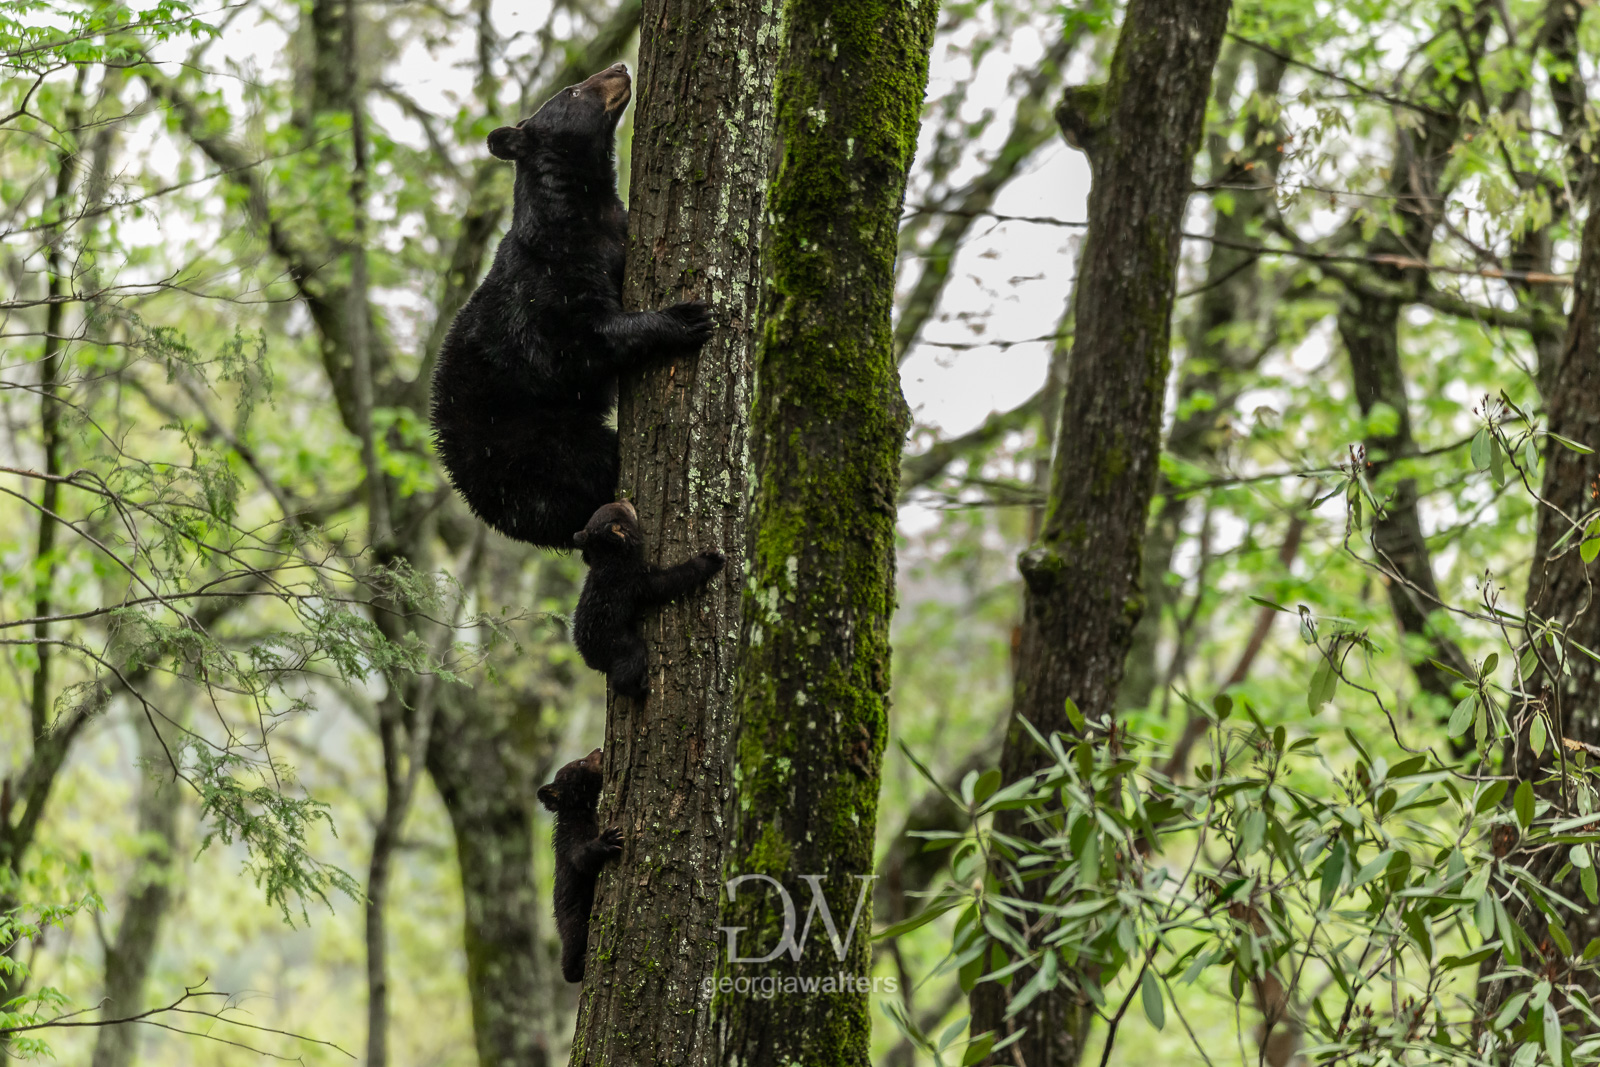 A mother black bear teaches two cubs how to climb a tree.